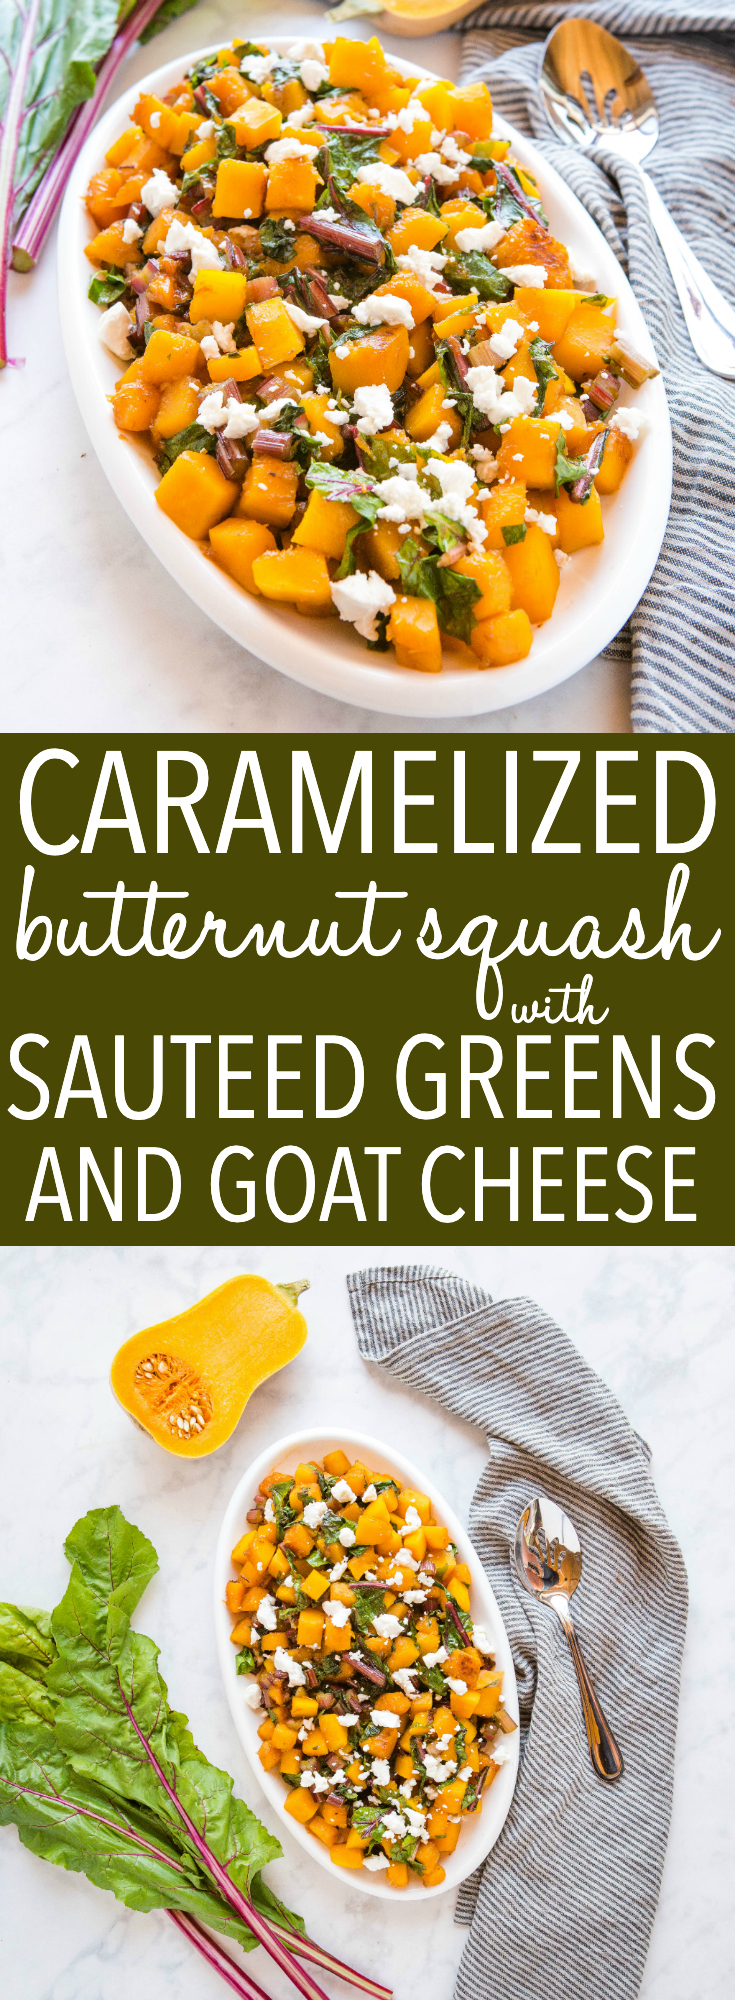 This Caramelized Butternut Squash with Sautéed Greens is the perfect ultra healthy side dish for Thanksgiving or Christmas made with sweet squash, fresh greens, maple syrup and goat cheese! Recipe from thebusybaker.ca! #butternutsquash #sidedish #vegetarian #healthy #naturalfoods #holiday #Christmas #Thanksgiving via @busybakerblog